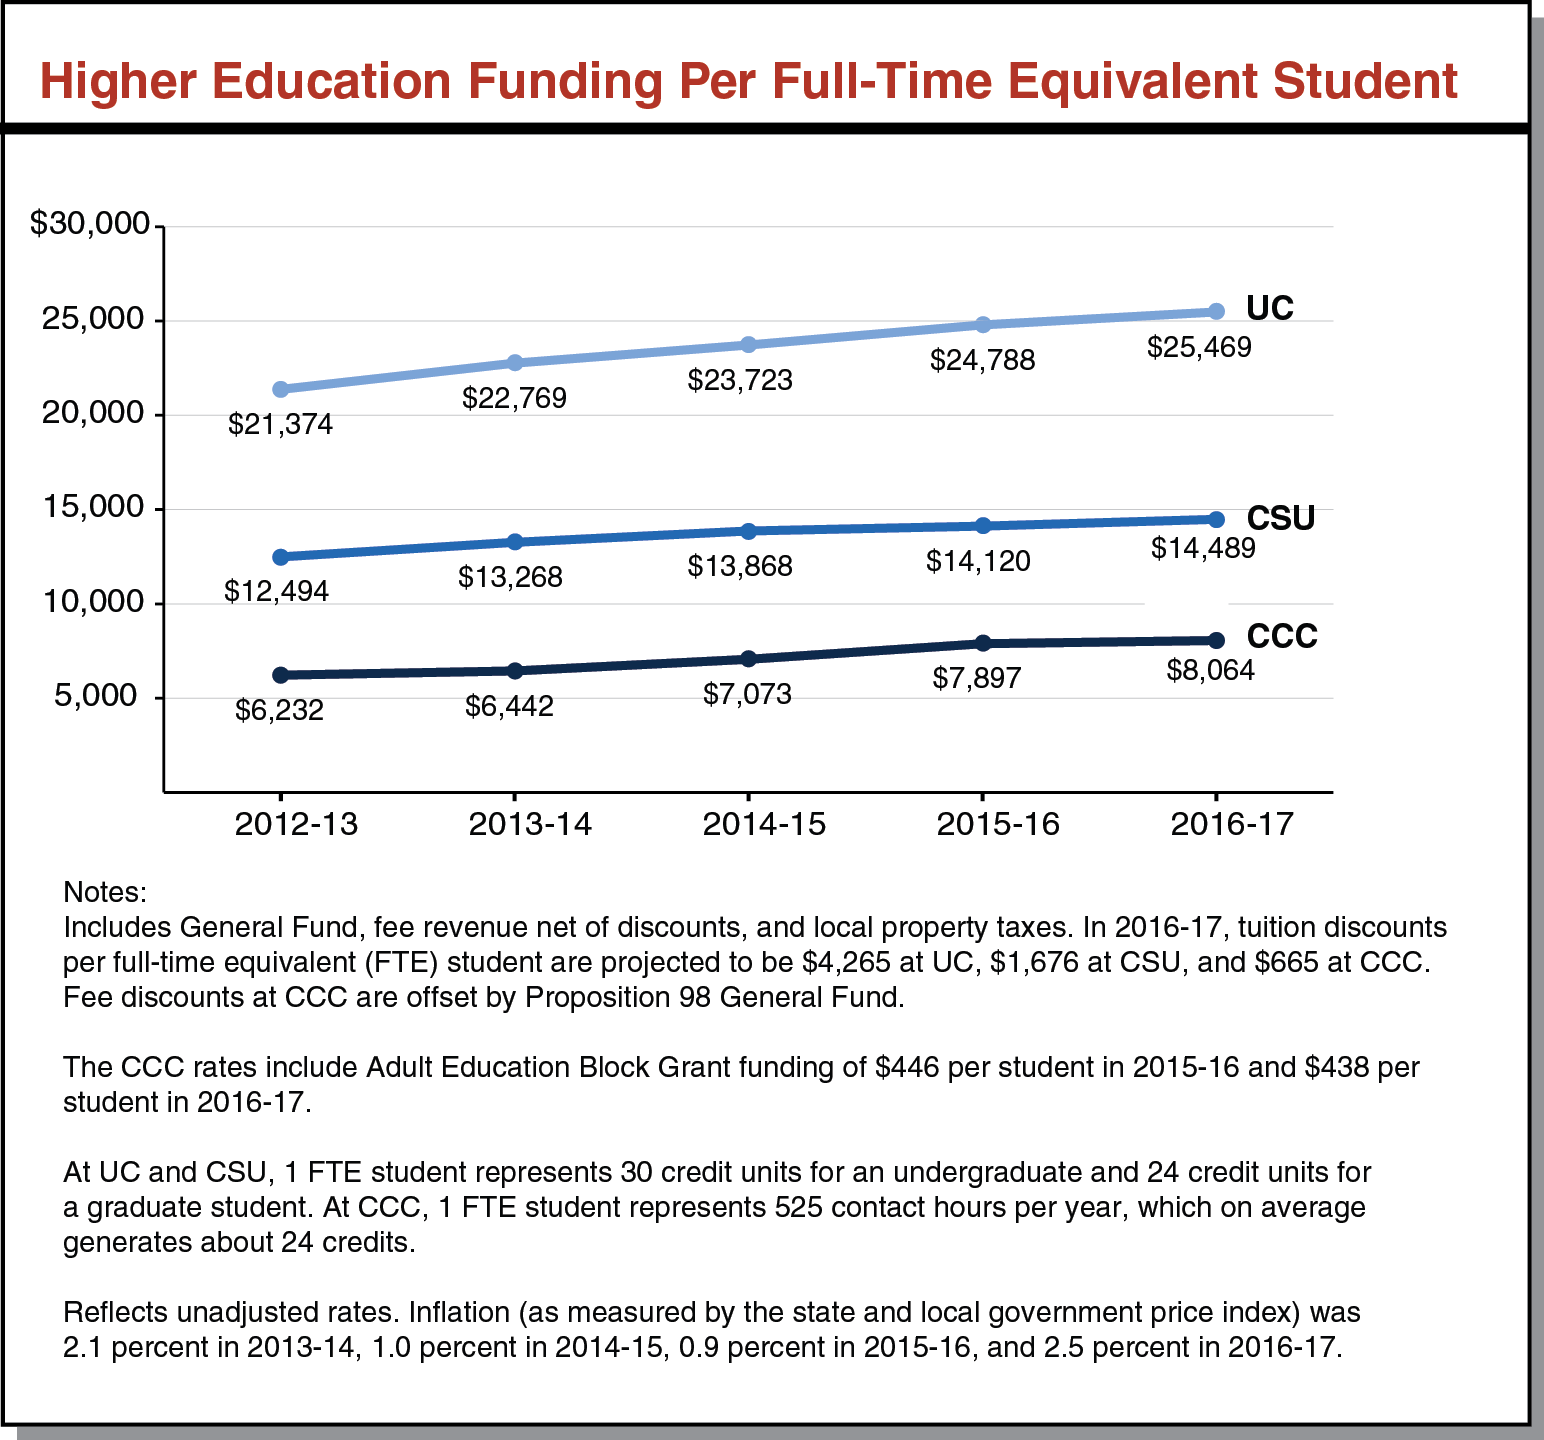 Higher Education Funding Per Full-Time Equivalent Student